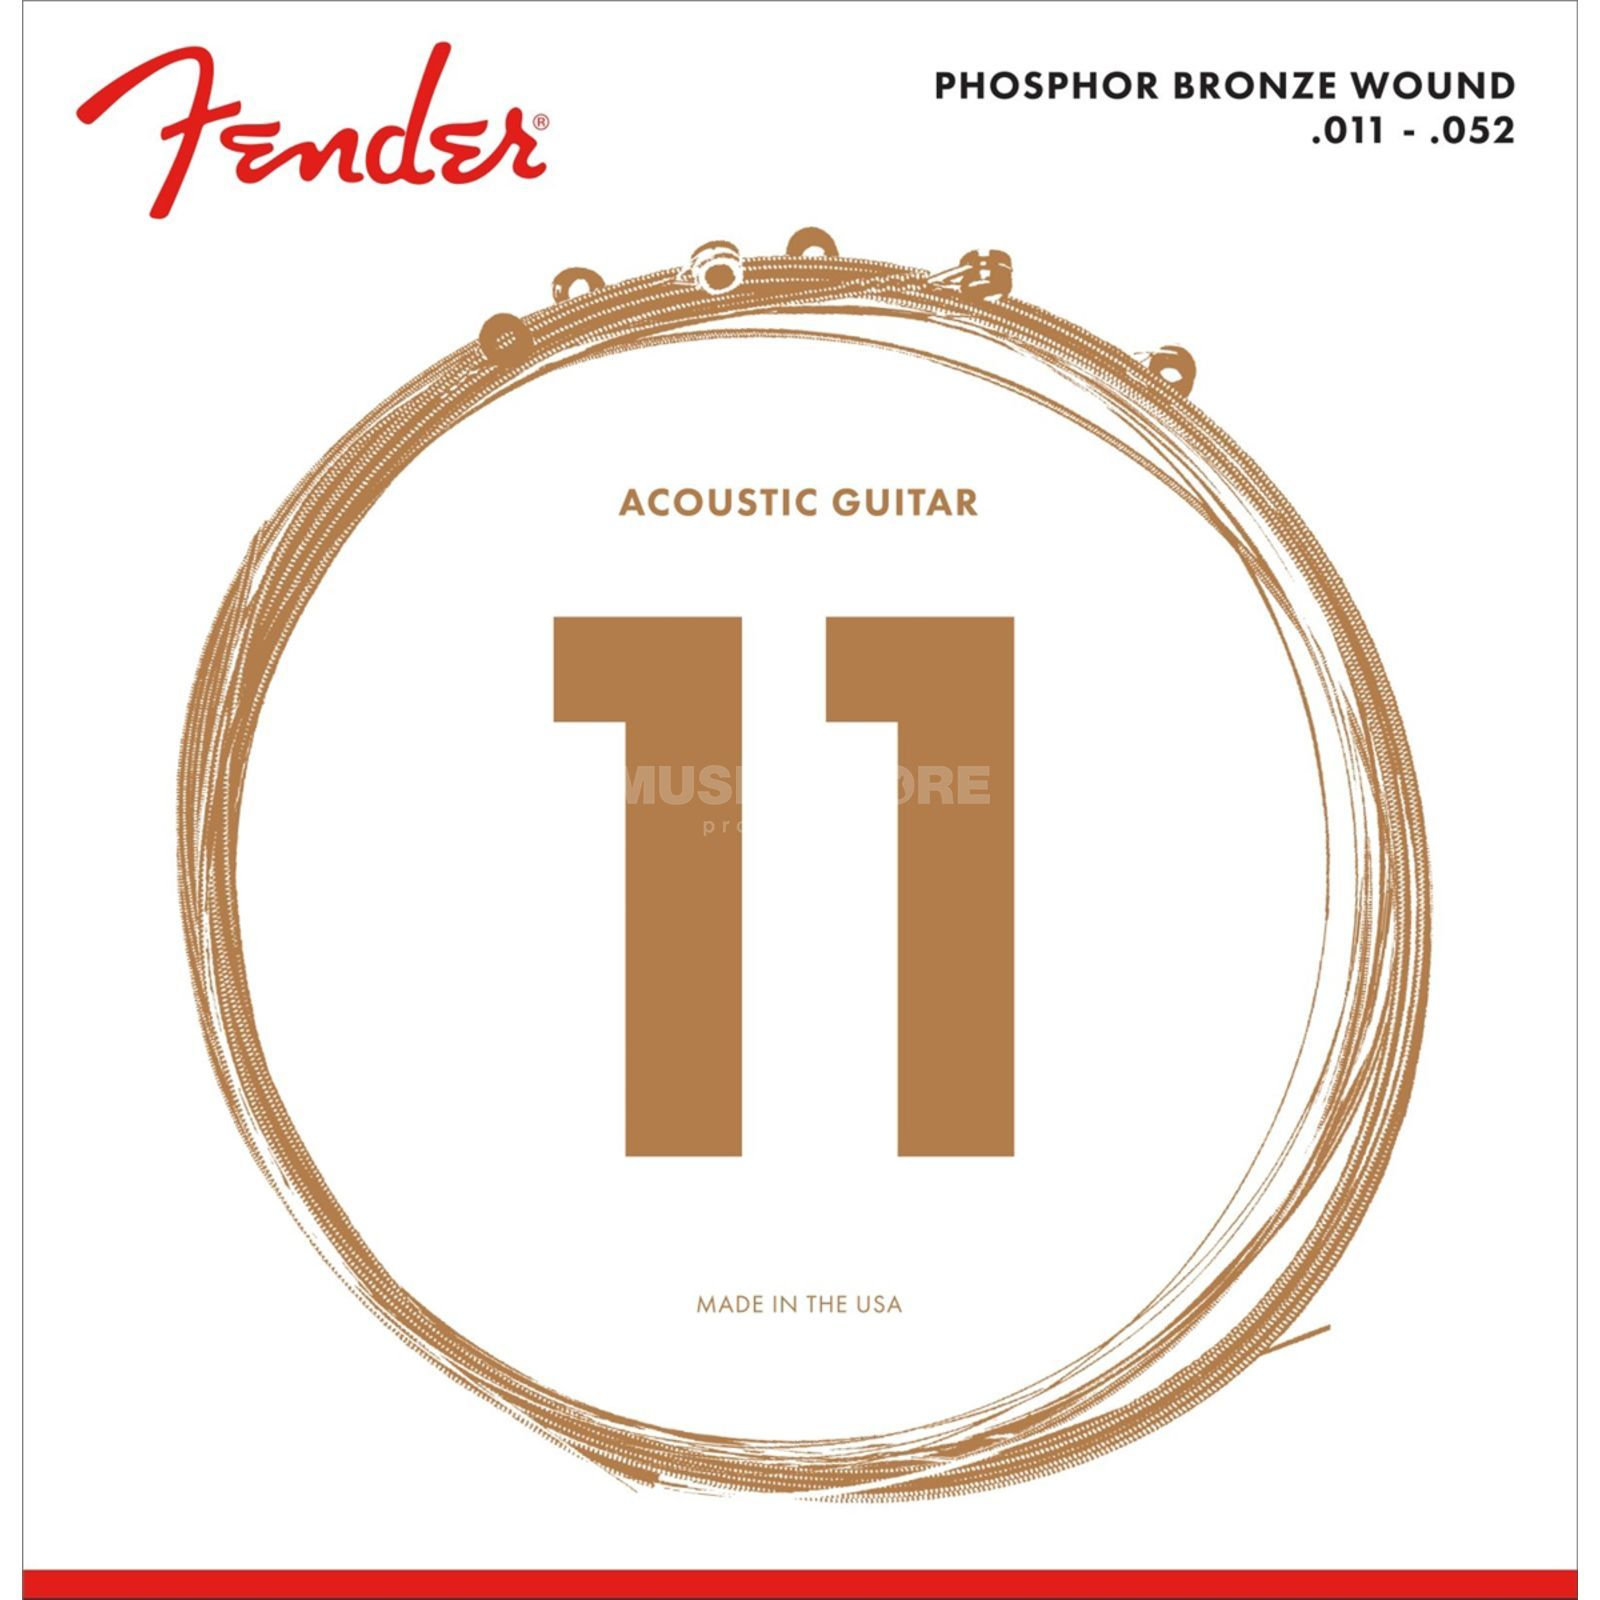 Fender Phosphor Bronze 60CL Acoustic  Guitar Strings   Produktbillede